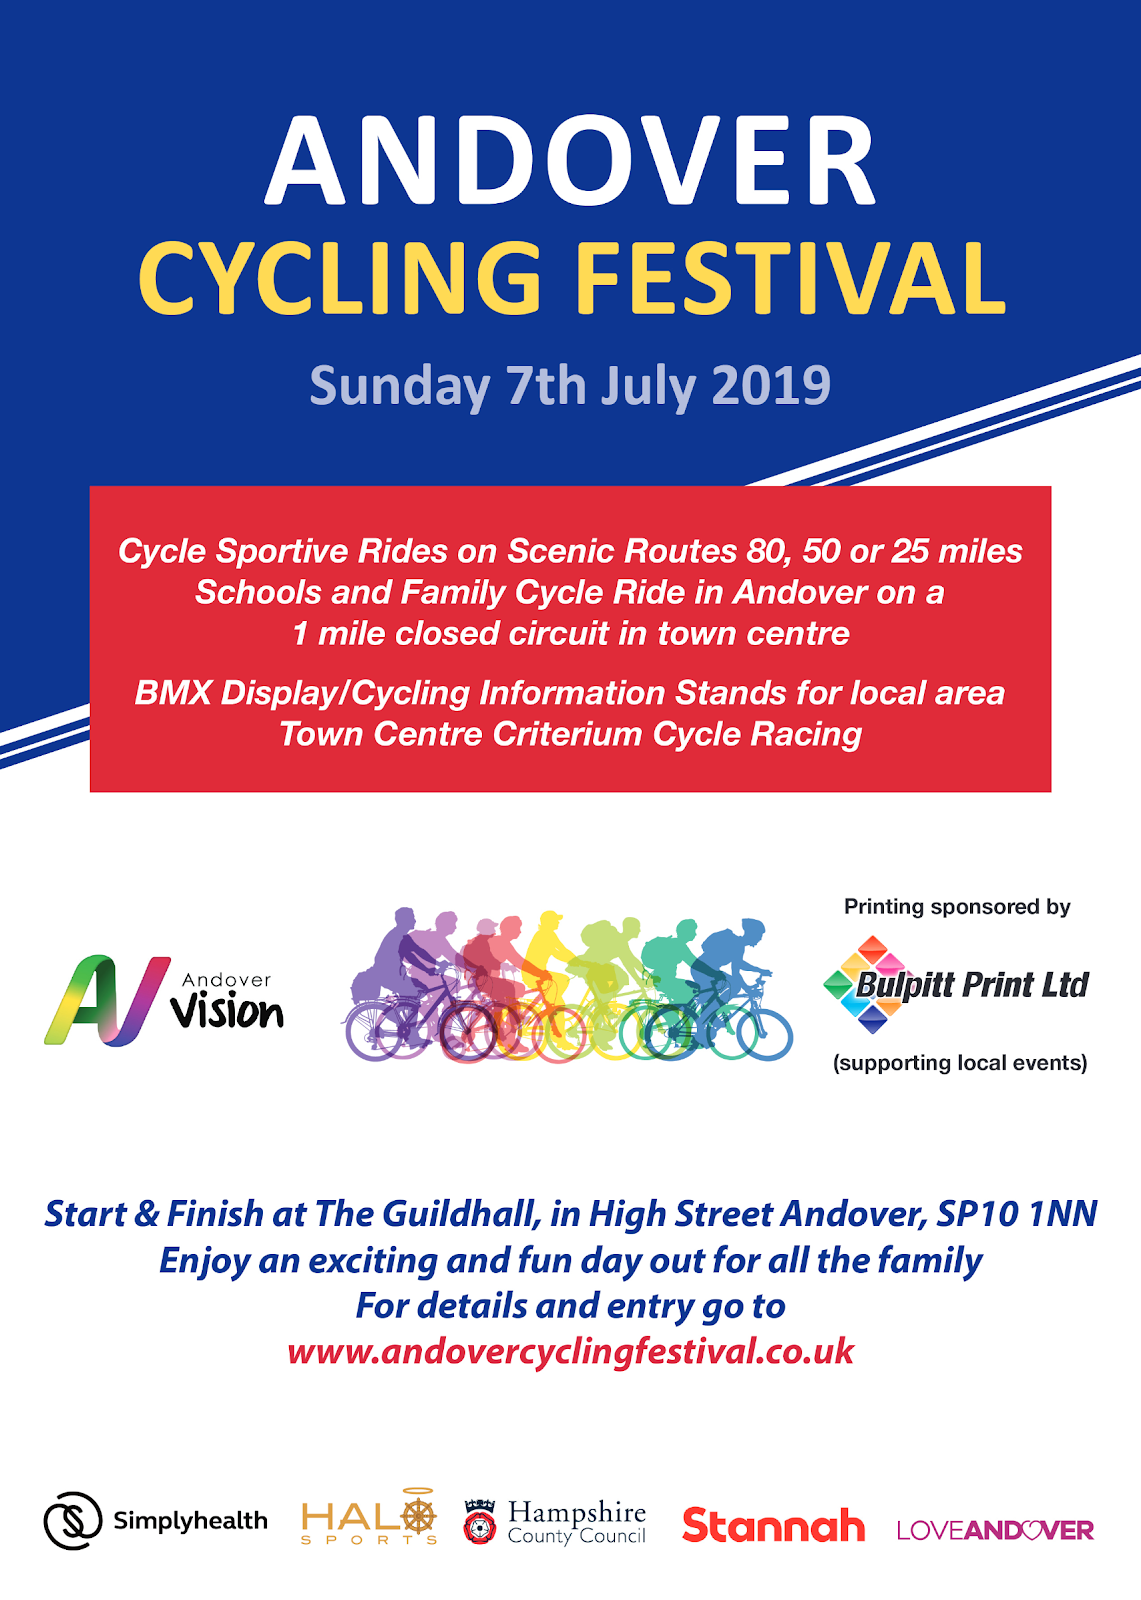 Andover Cycling Festival 2019